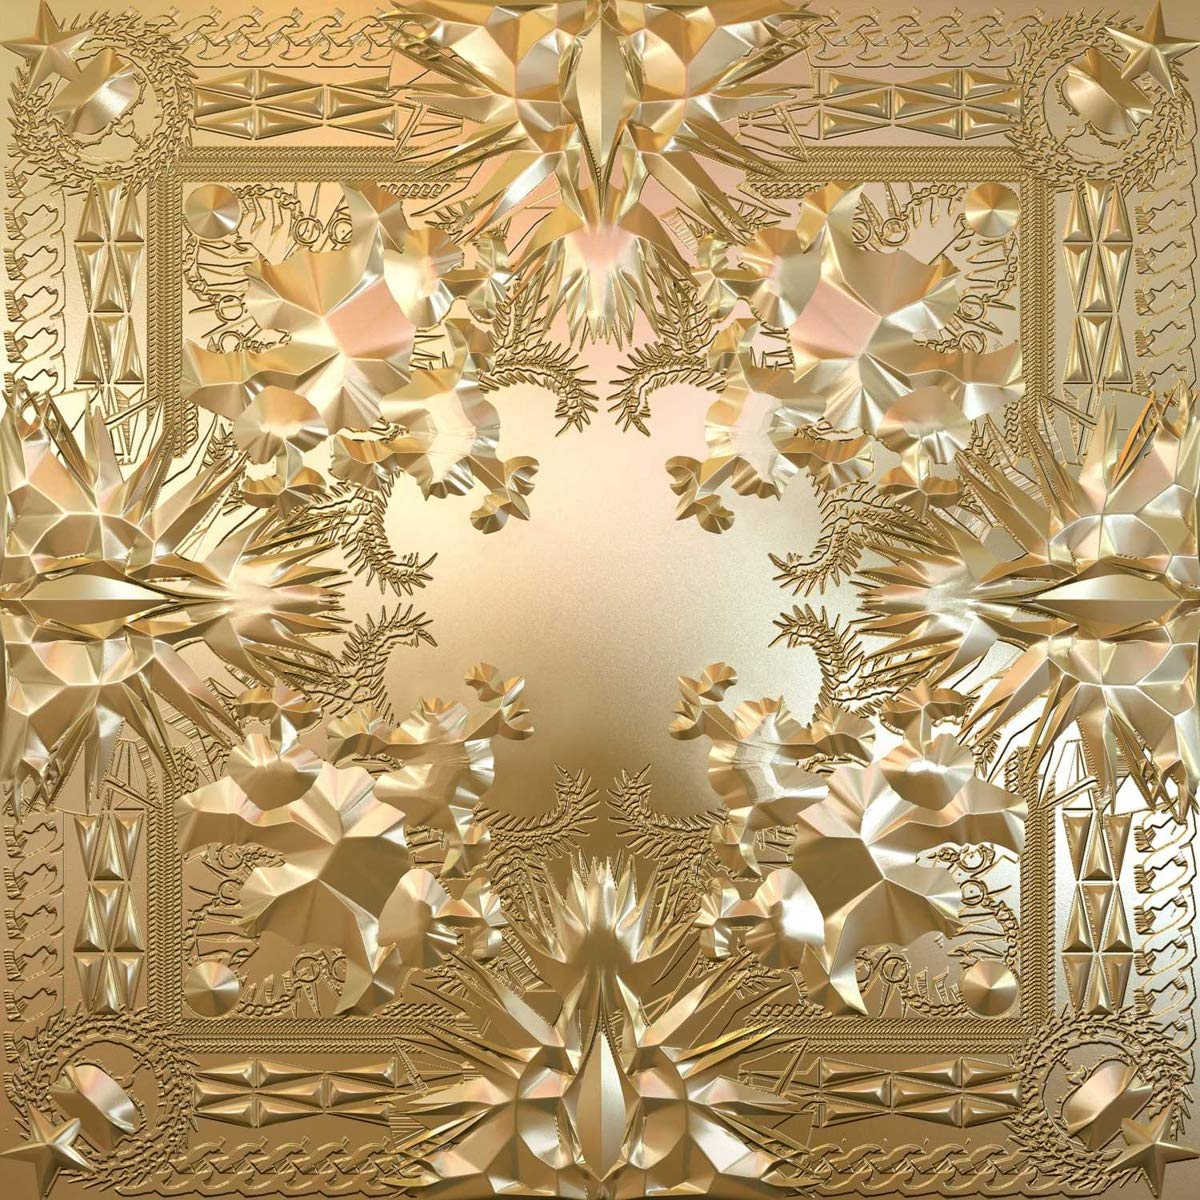 Jay Z/Kanye West - Murder To Excellence